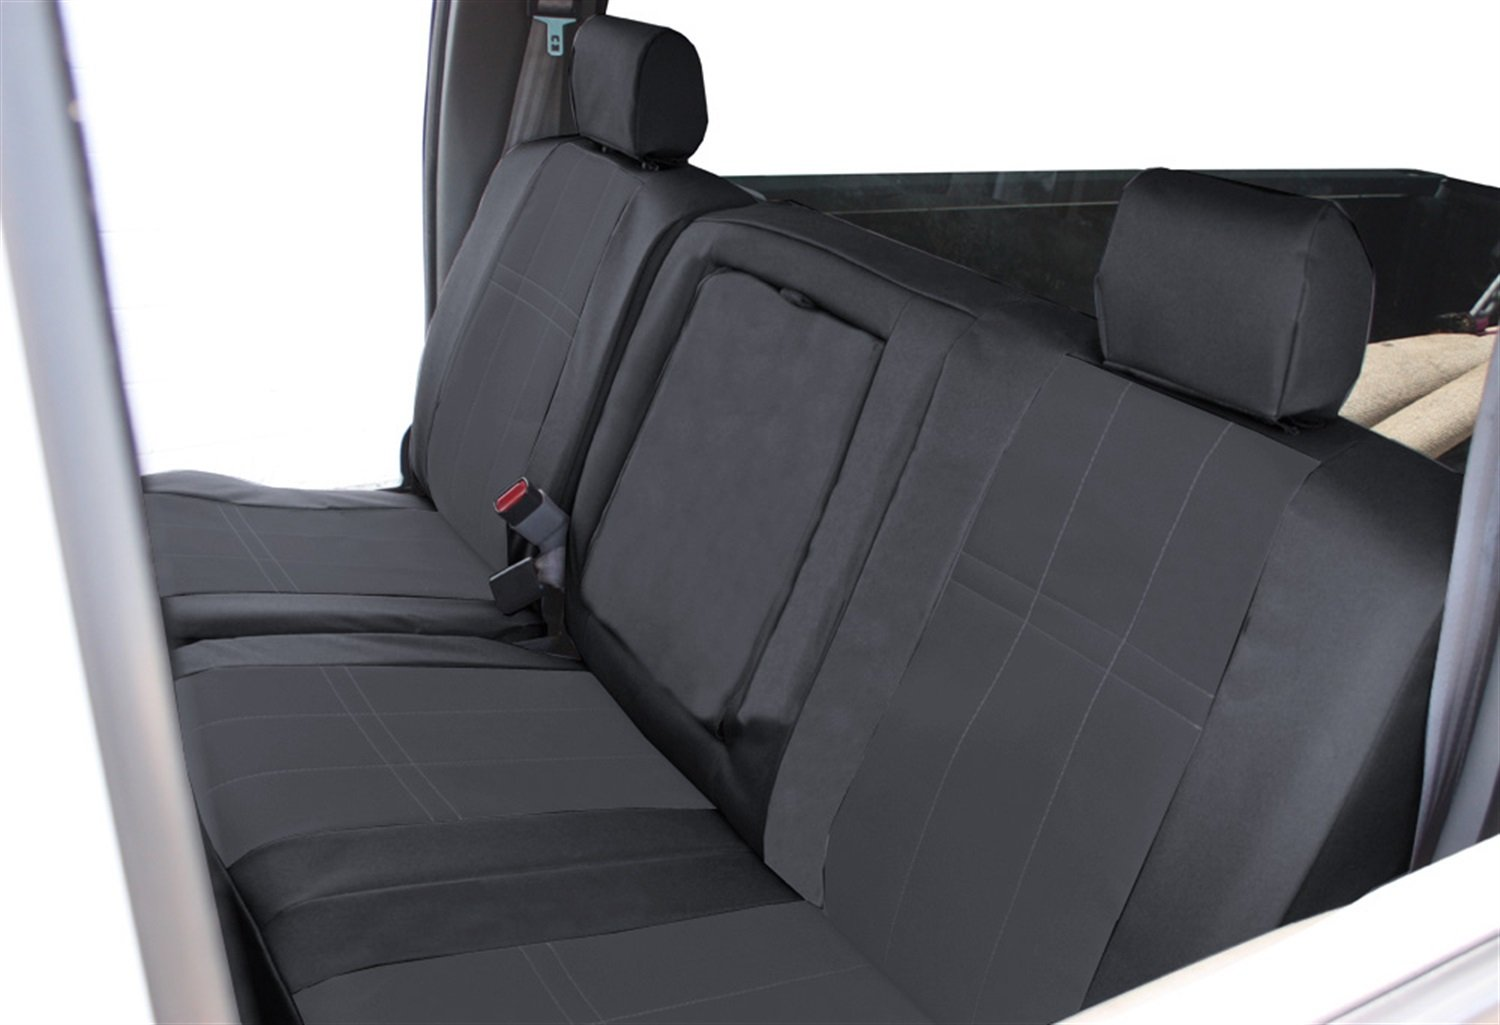 DuraPlus Charcoal Insert and Black Trim CalTrend Front Row 40//20//40 Split Bench Custom Fit Seat Cover for Select Dodge Models